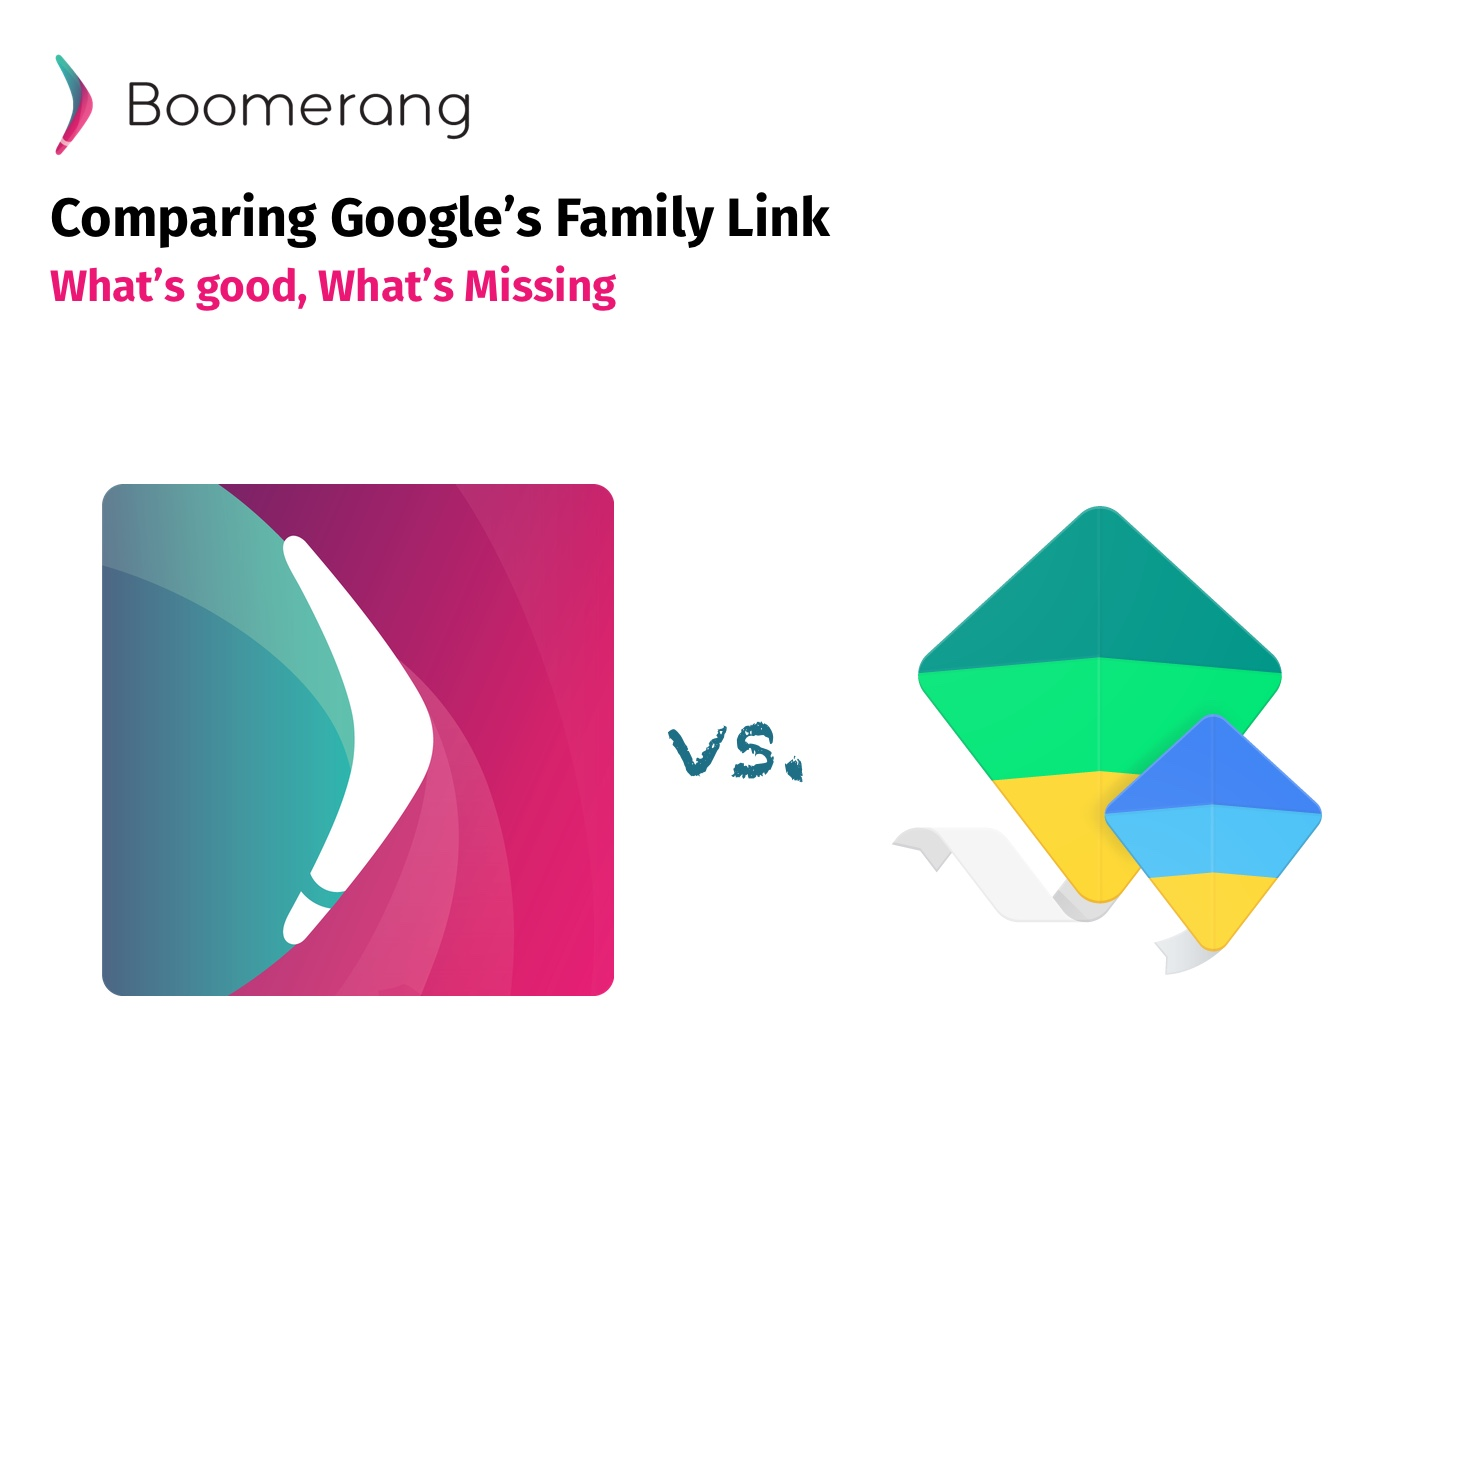 Boomerang vs. Family Link